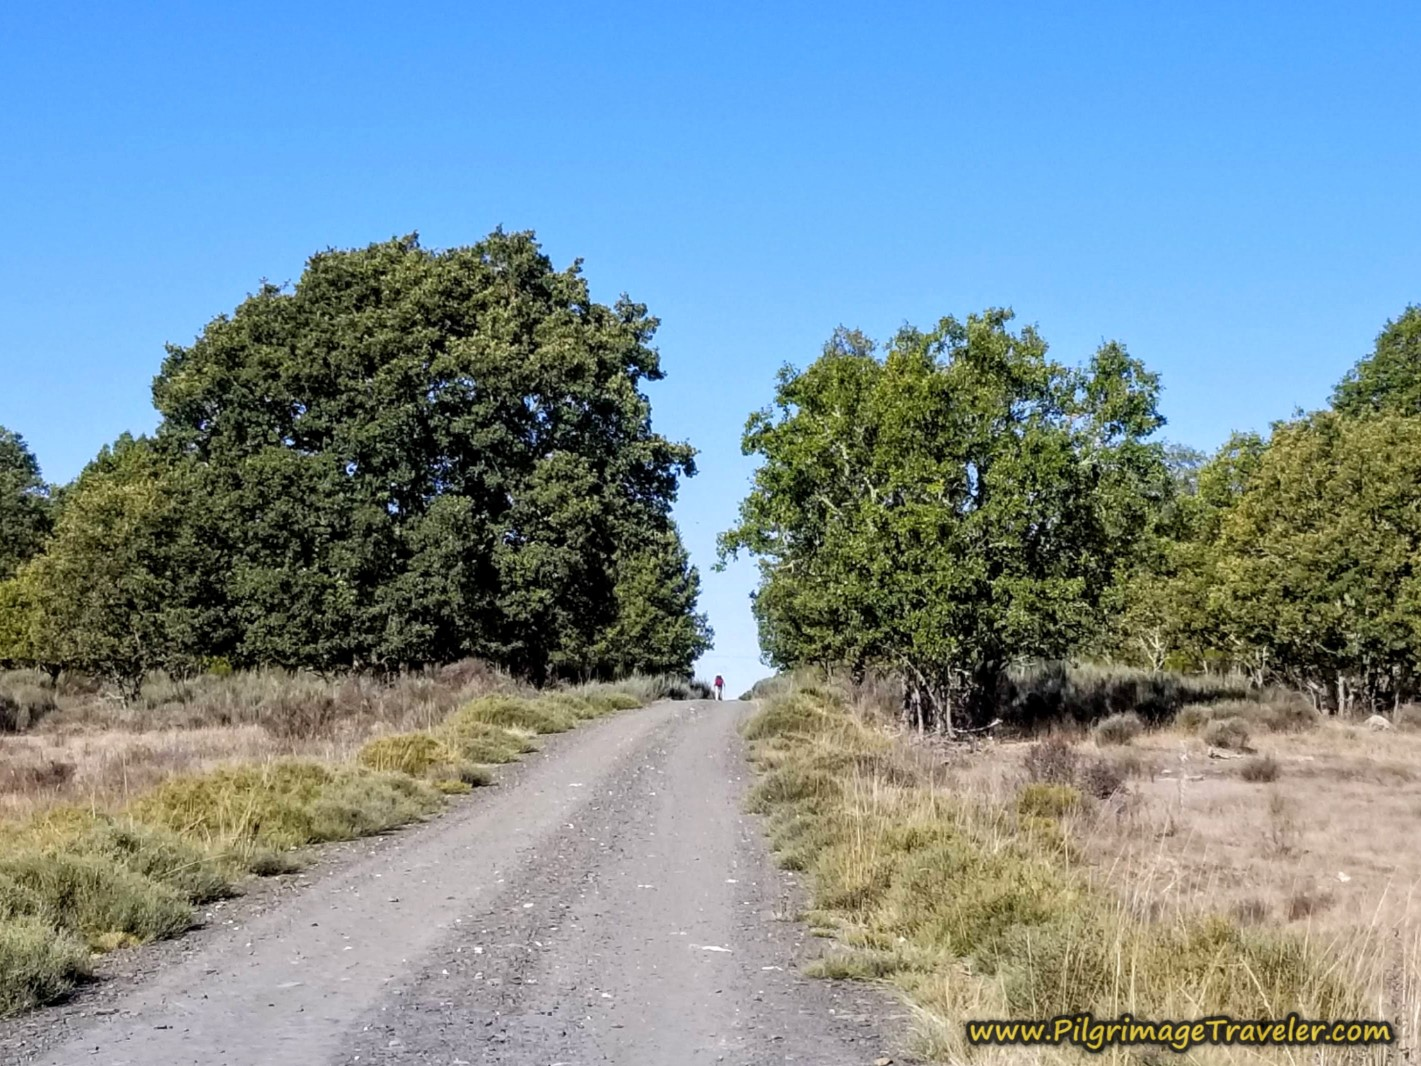 The Road to Cernadilla on the Camino Sanabrés